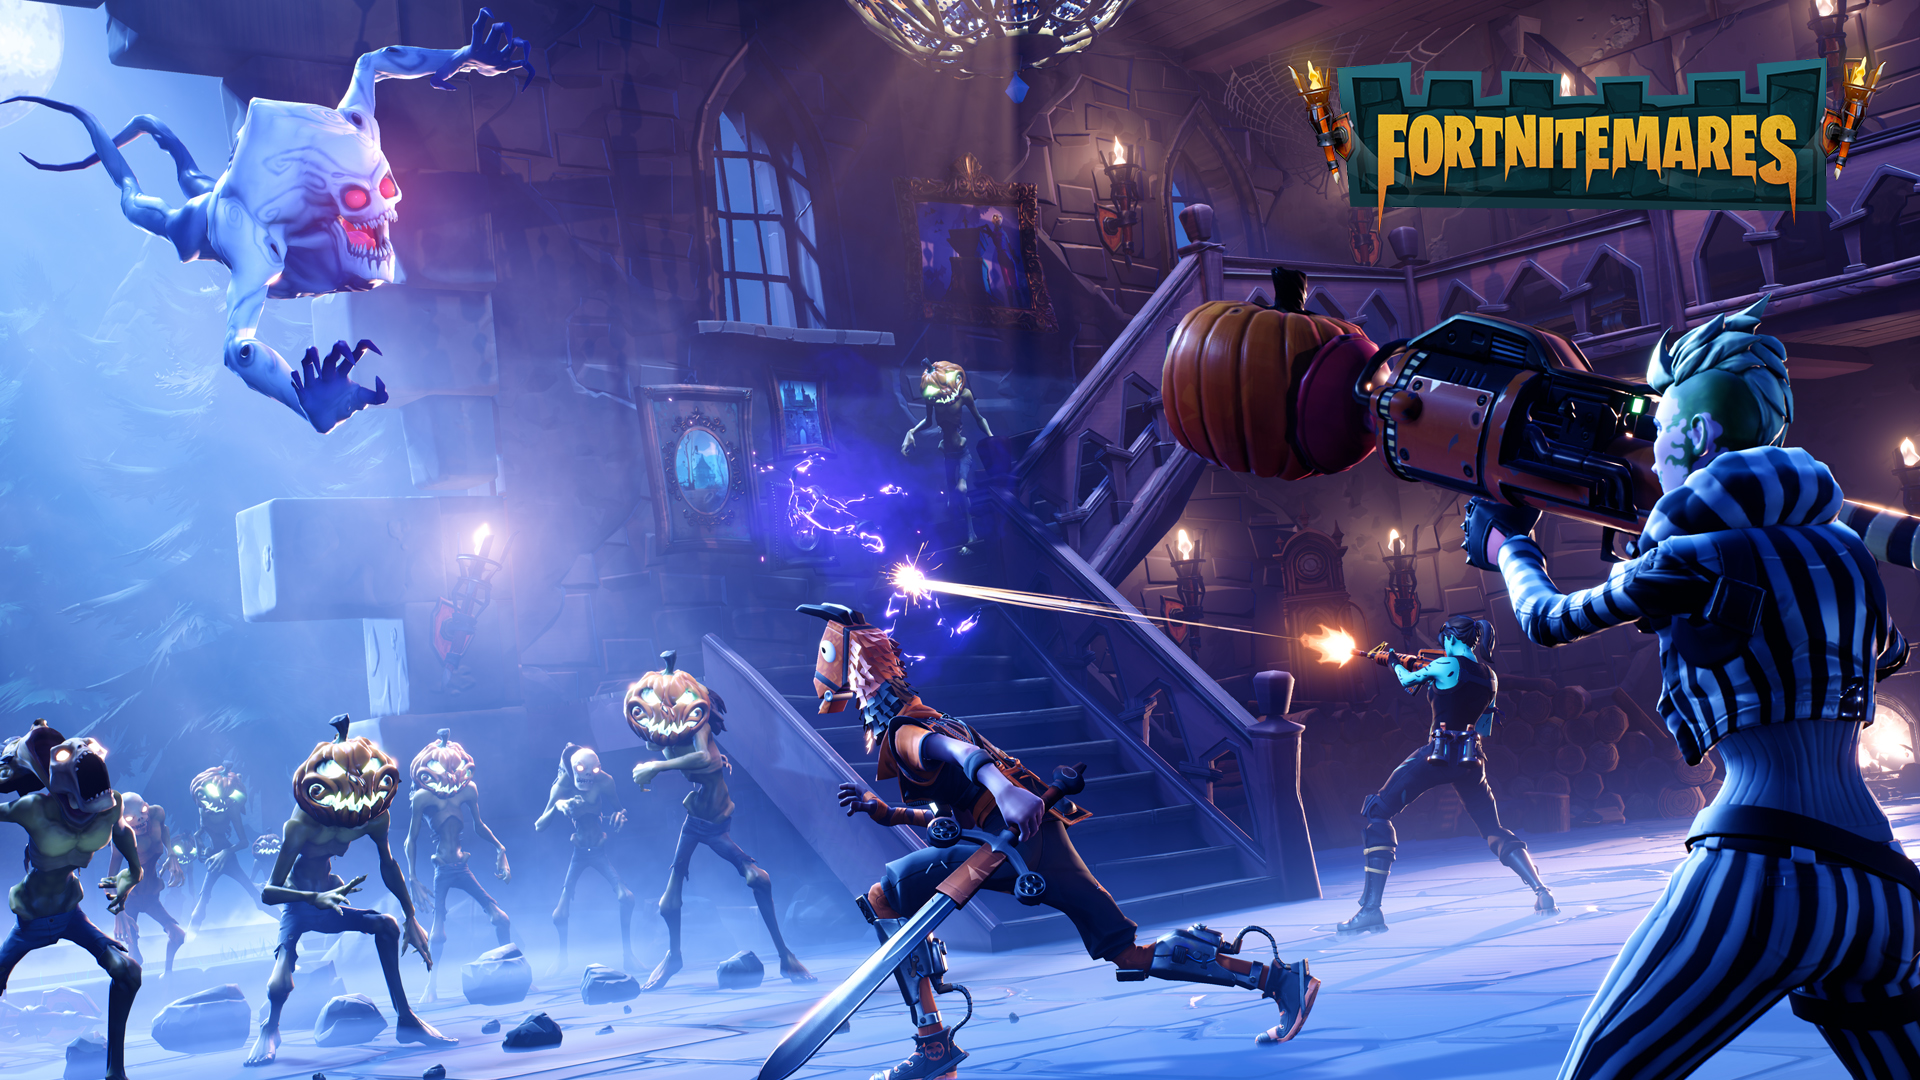 Fortnitemares Update 18 Patch Notes 1920x1080